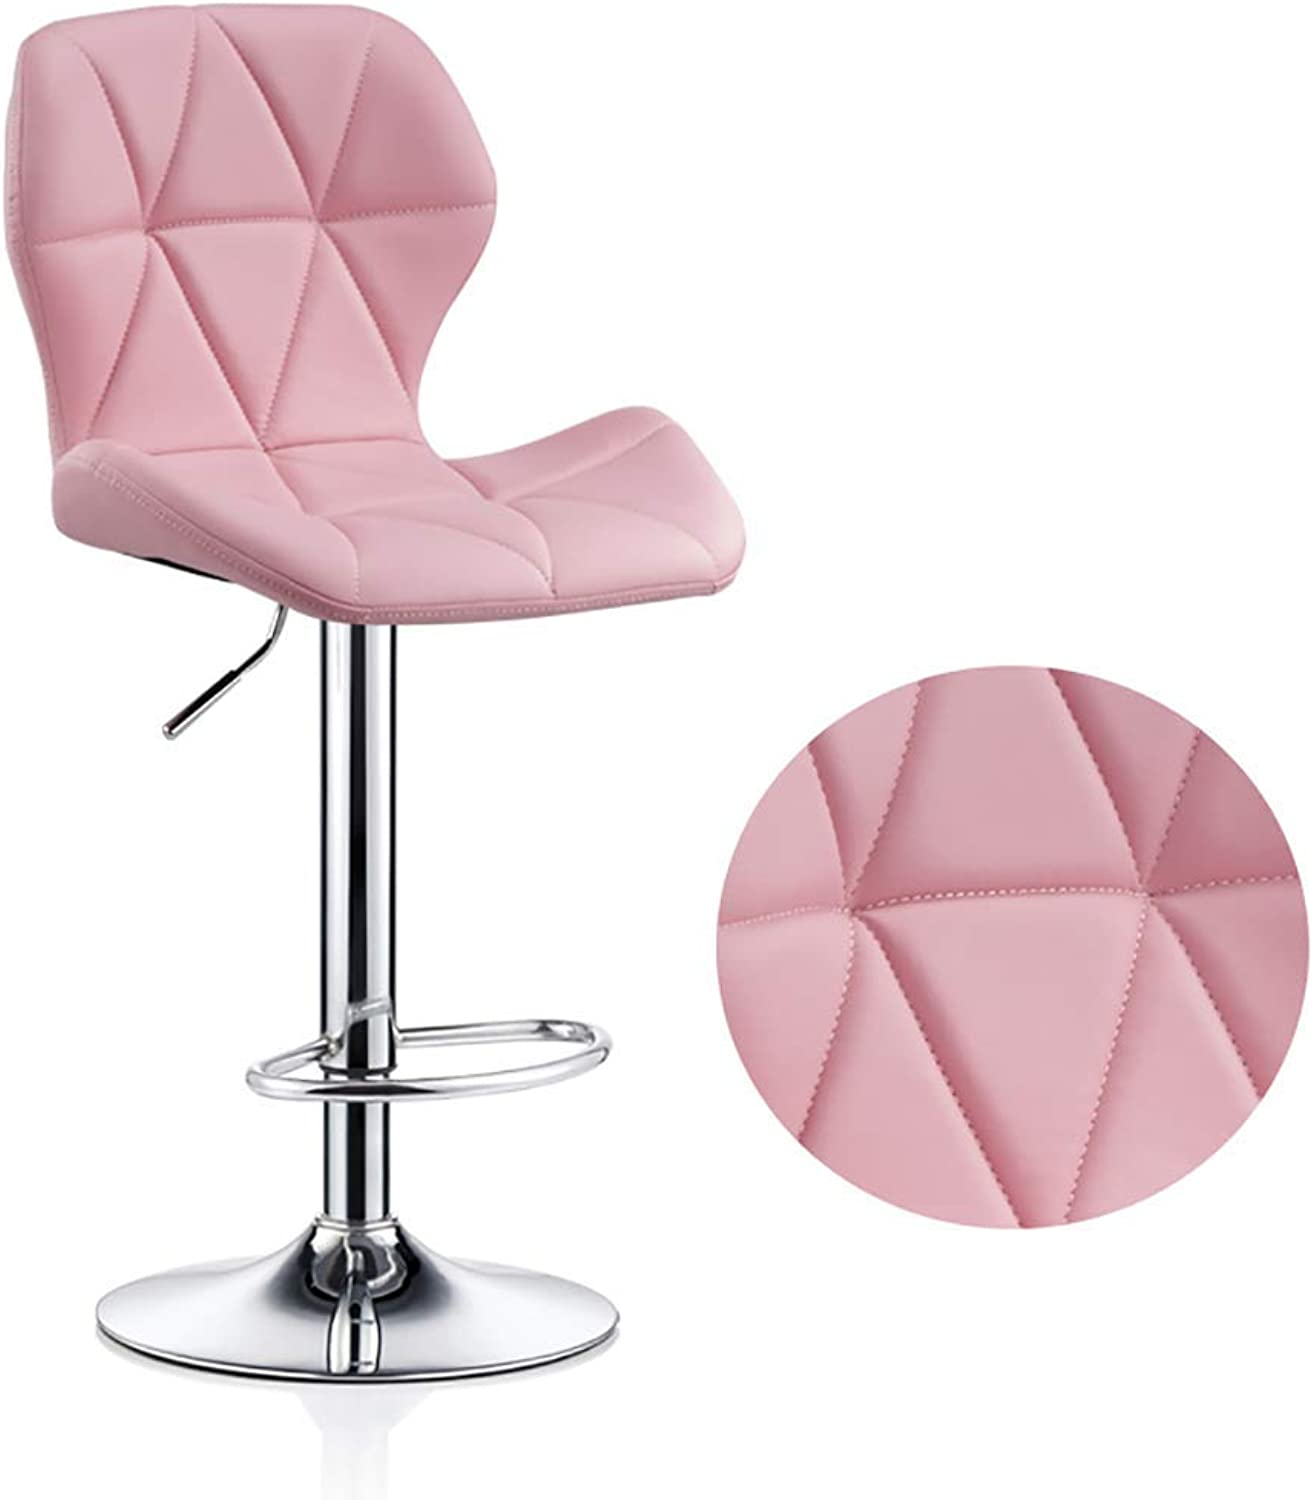 LLYU Modern bar Stool bar Chair Breakfast bar Stool can be redated PU Leather Chair backrest, footrest Height Adjustable, 3 colors (color   Pink)